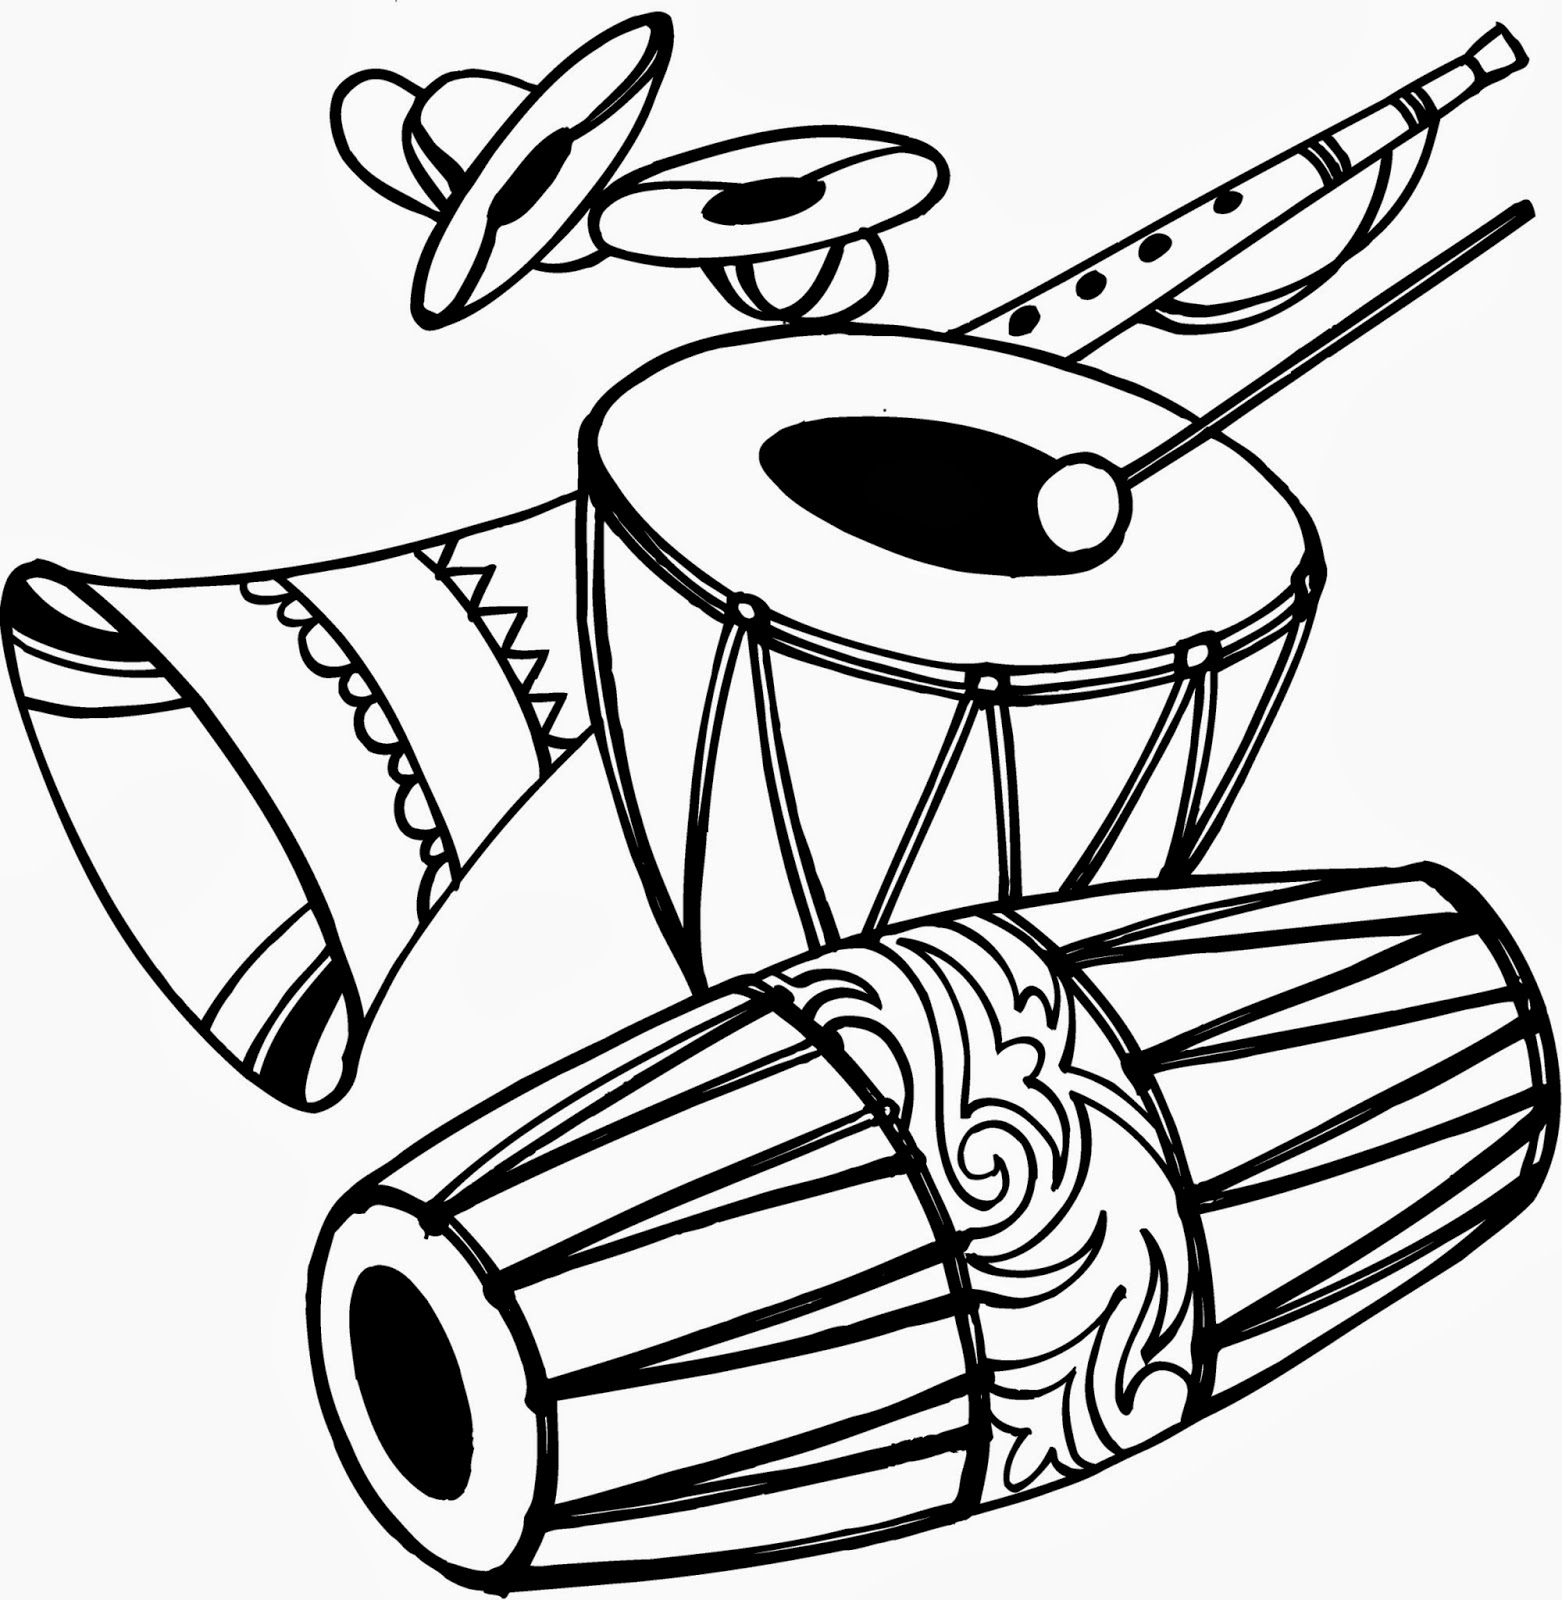 Free indian wedding clipart black and white png download Free Hindu Cliparts, Download Free Clip Art, Free Clip Art on ... png download